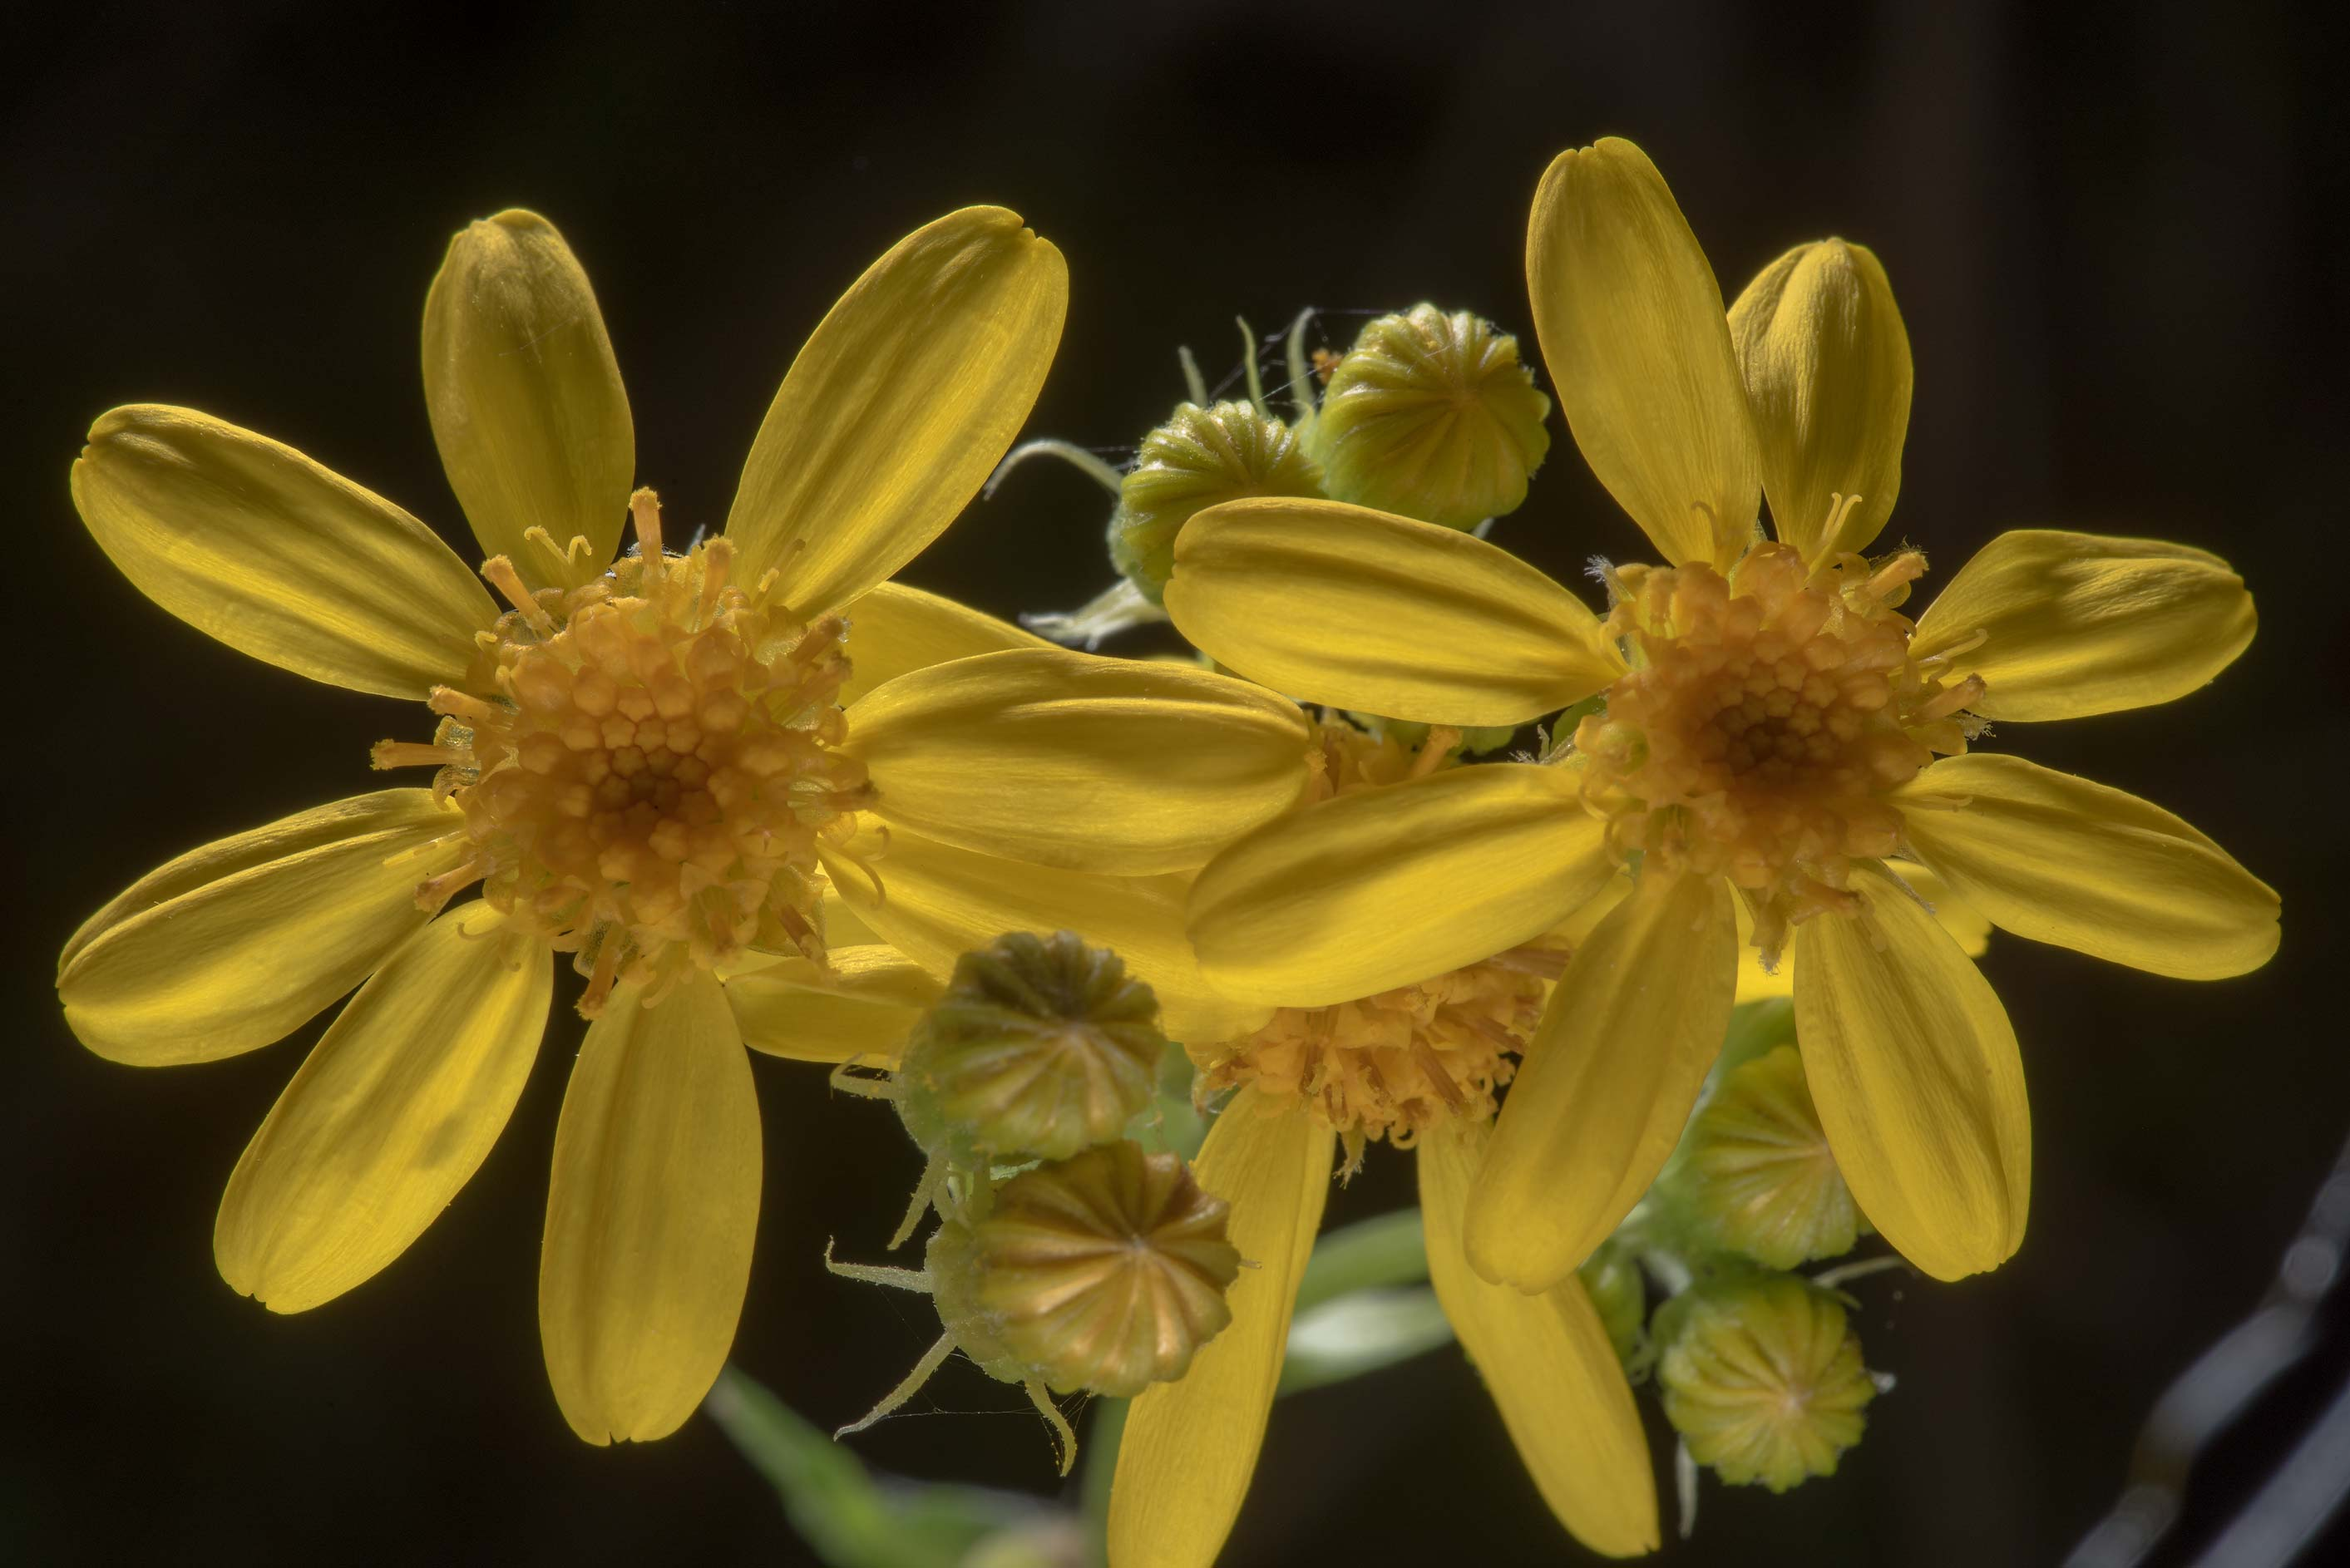 Flowers of squaw-weed (Senecio ampullaceus) in...State Historic Site. Washington, Texas